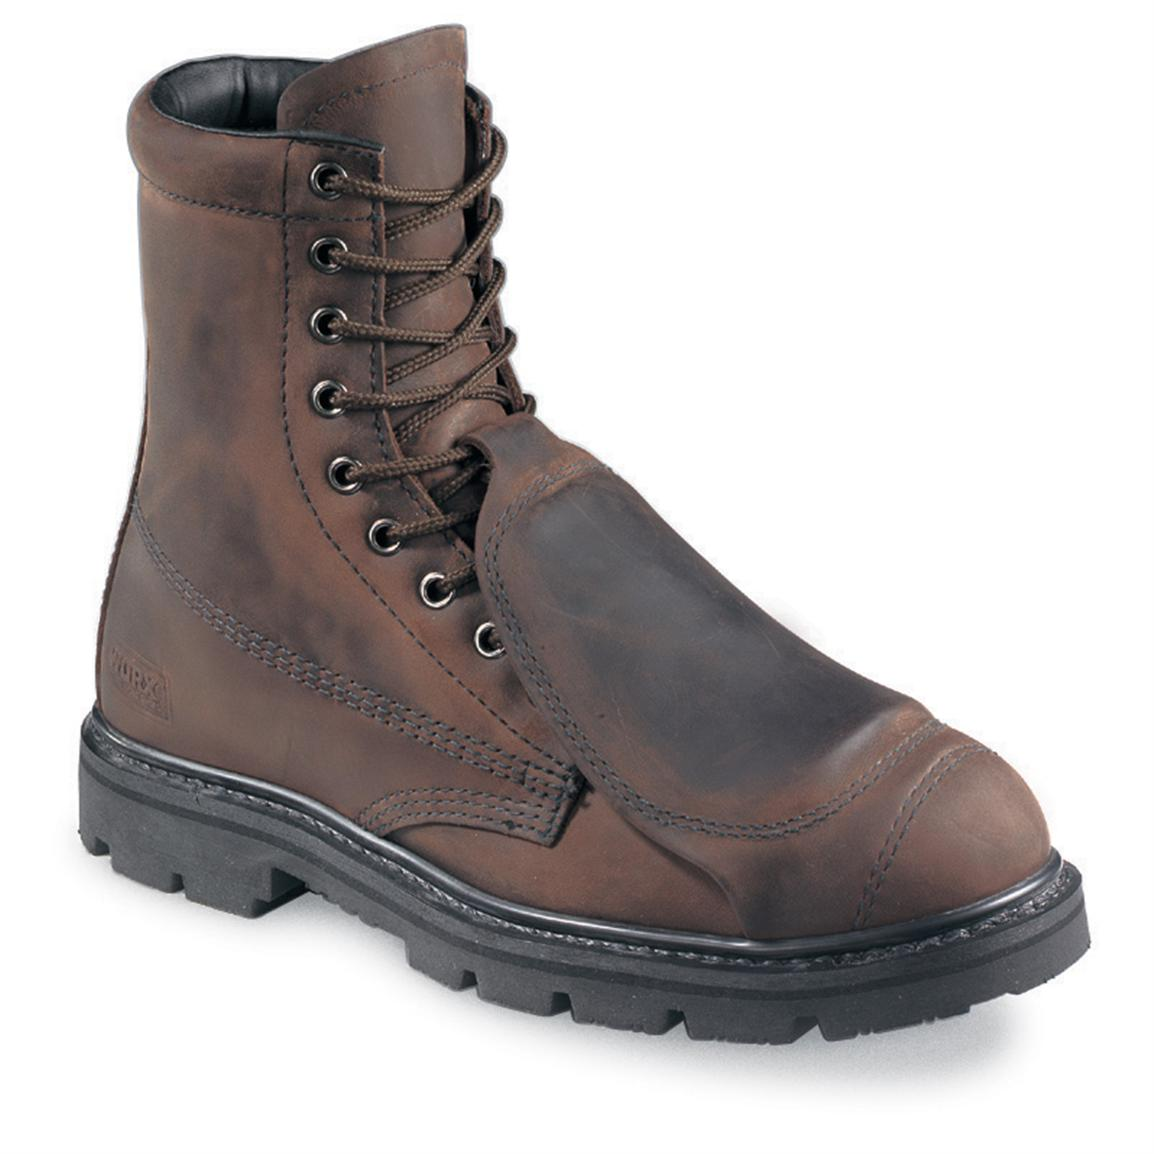 Red Wing Metatarsal Boots xnx5Gpvy